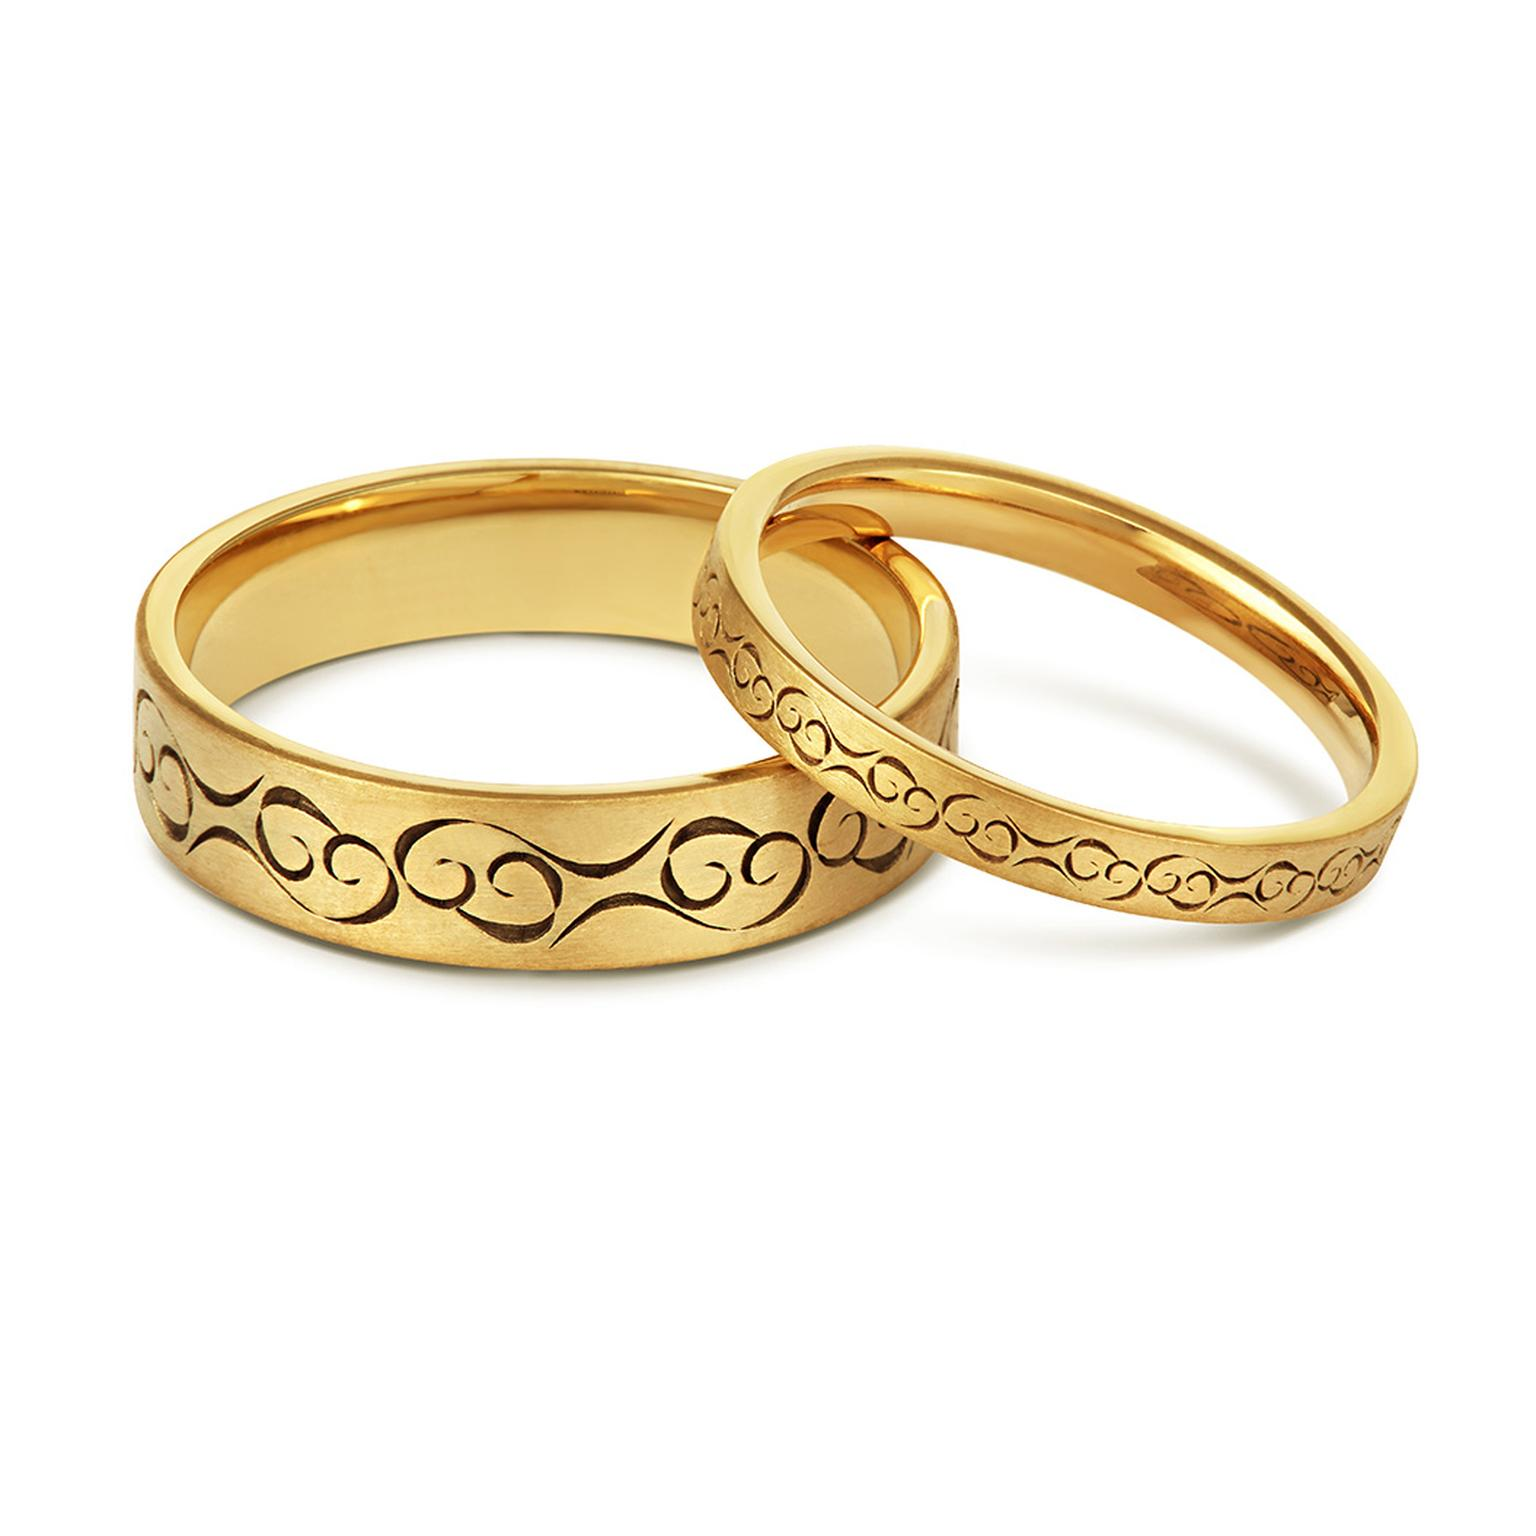 The perfect wedding bands for samesex couples  The